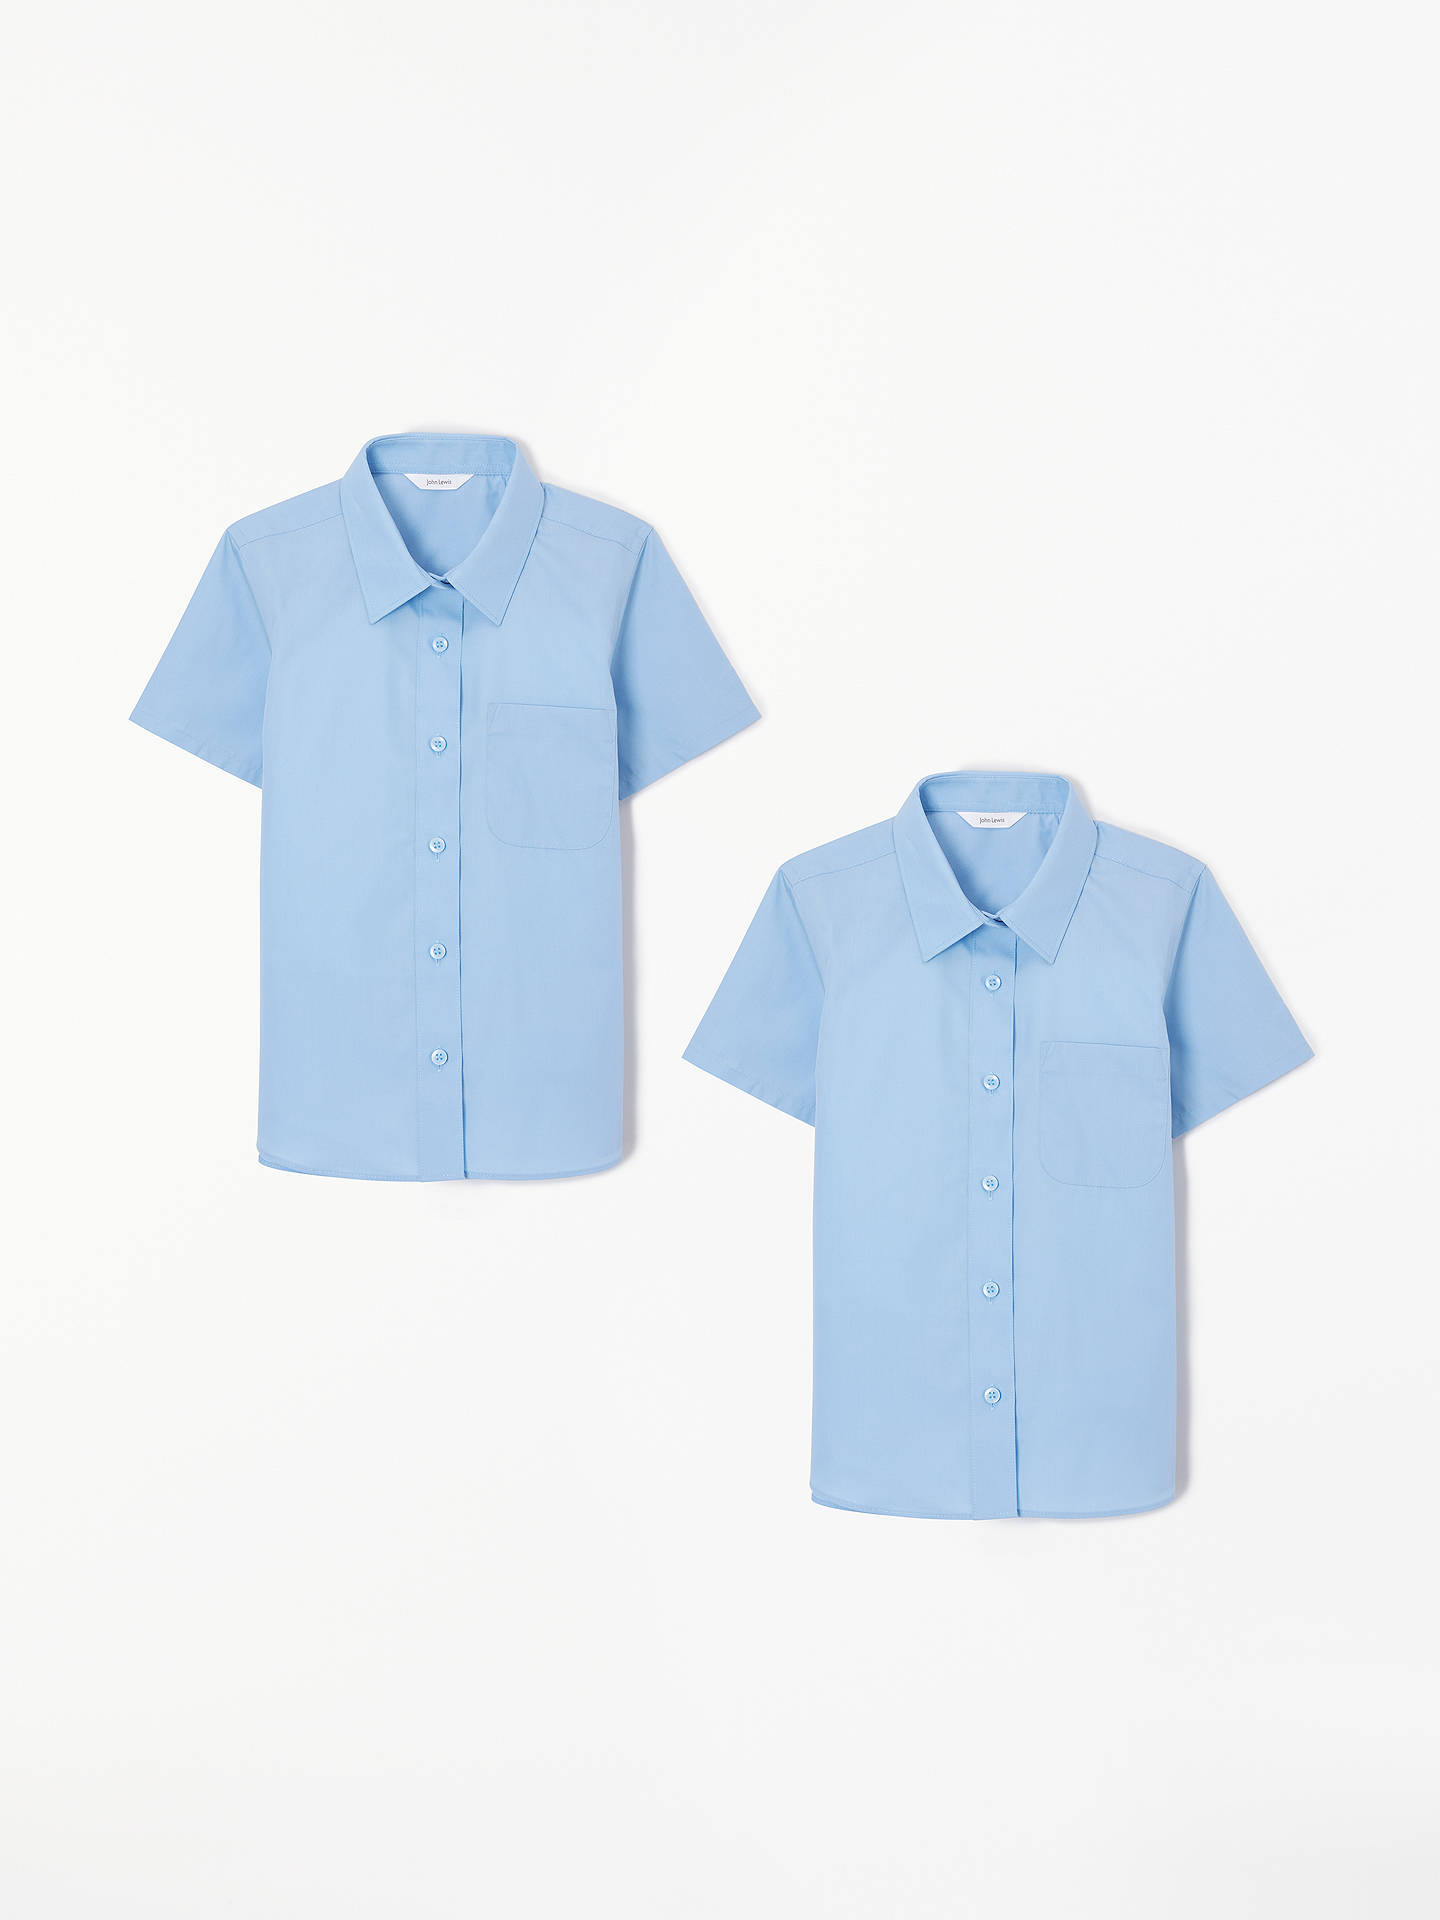 BuyJohn Lewis & Partners Girls' Easy Care Button Neck Short Sleeve School Shirt, Pack of 2, Blue, 4 years Online at johnlewis.com